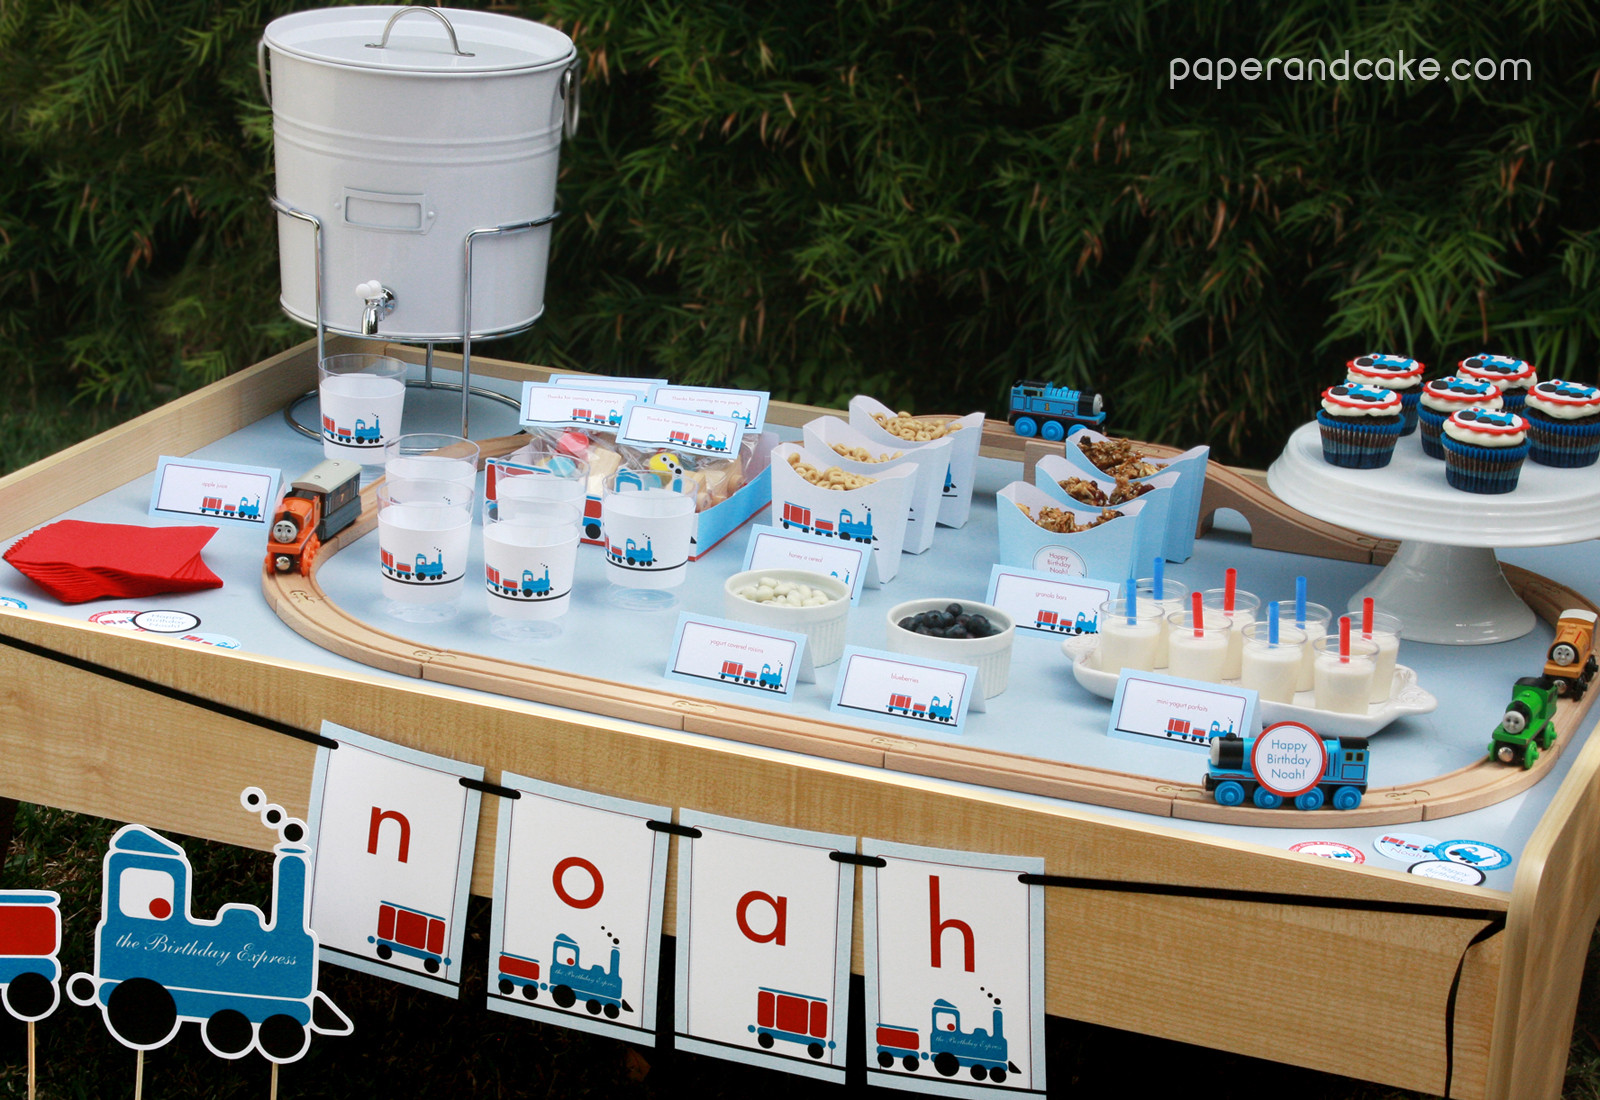 Best ideas about Train Birthday Decorations . Save or Pin paper and cake New Party All Aboard the Printable Train Now.